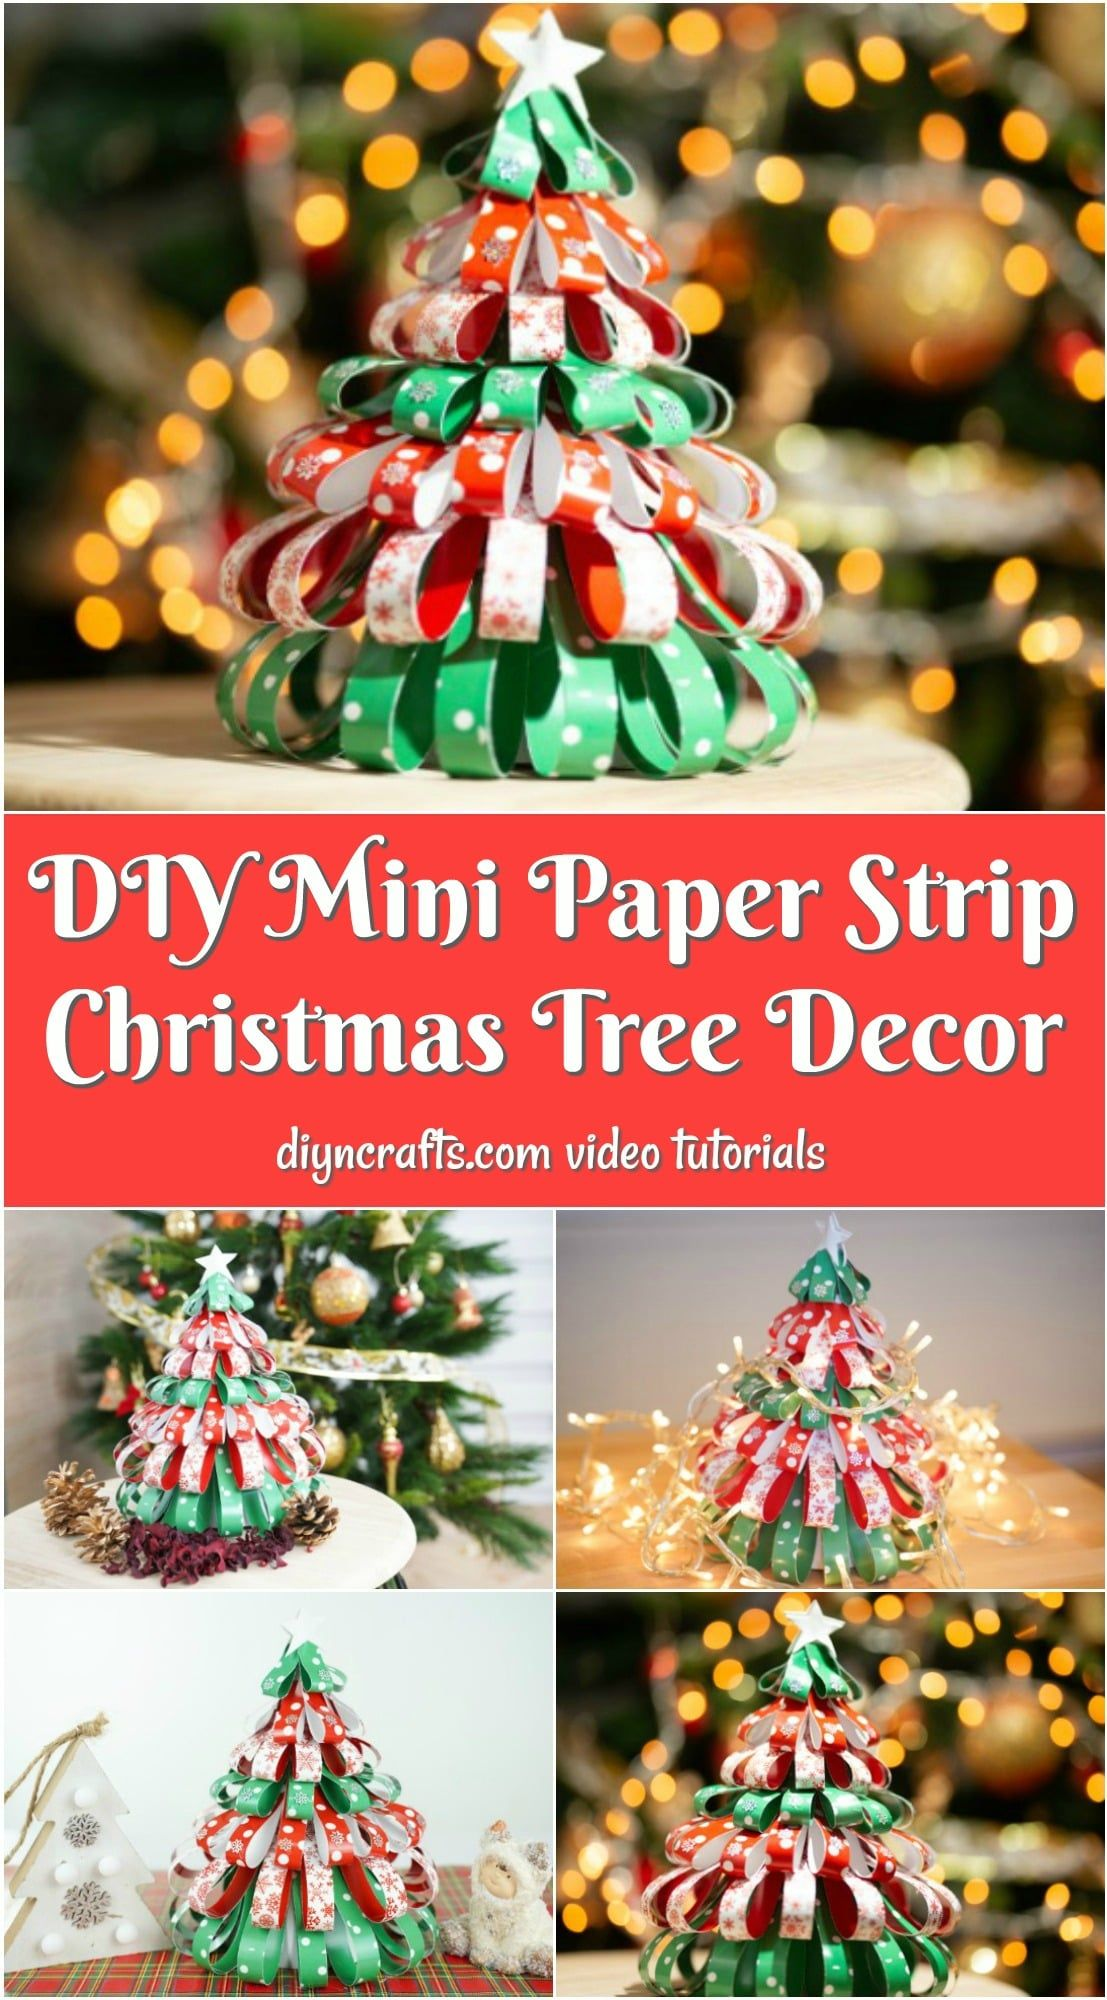 Festive Paper Strip Mini Christmas Tree Decoration With Video With Images Christmas Tree Decorations Mini Christmas Tree Decorations Mini Christmas Tree